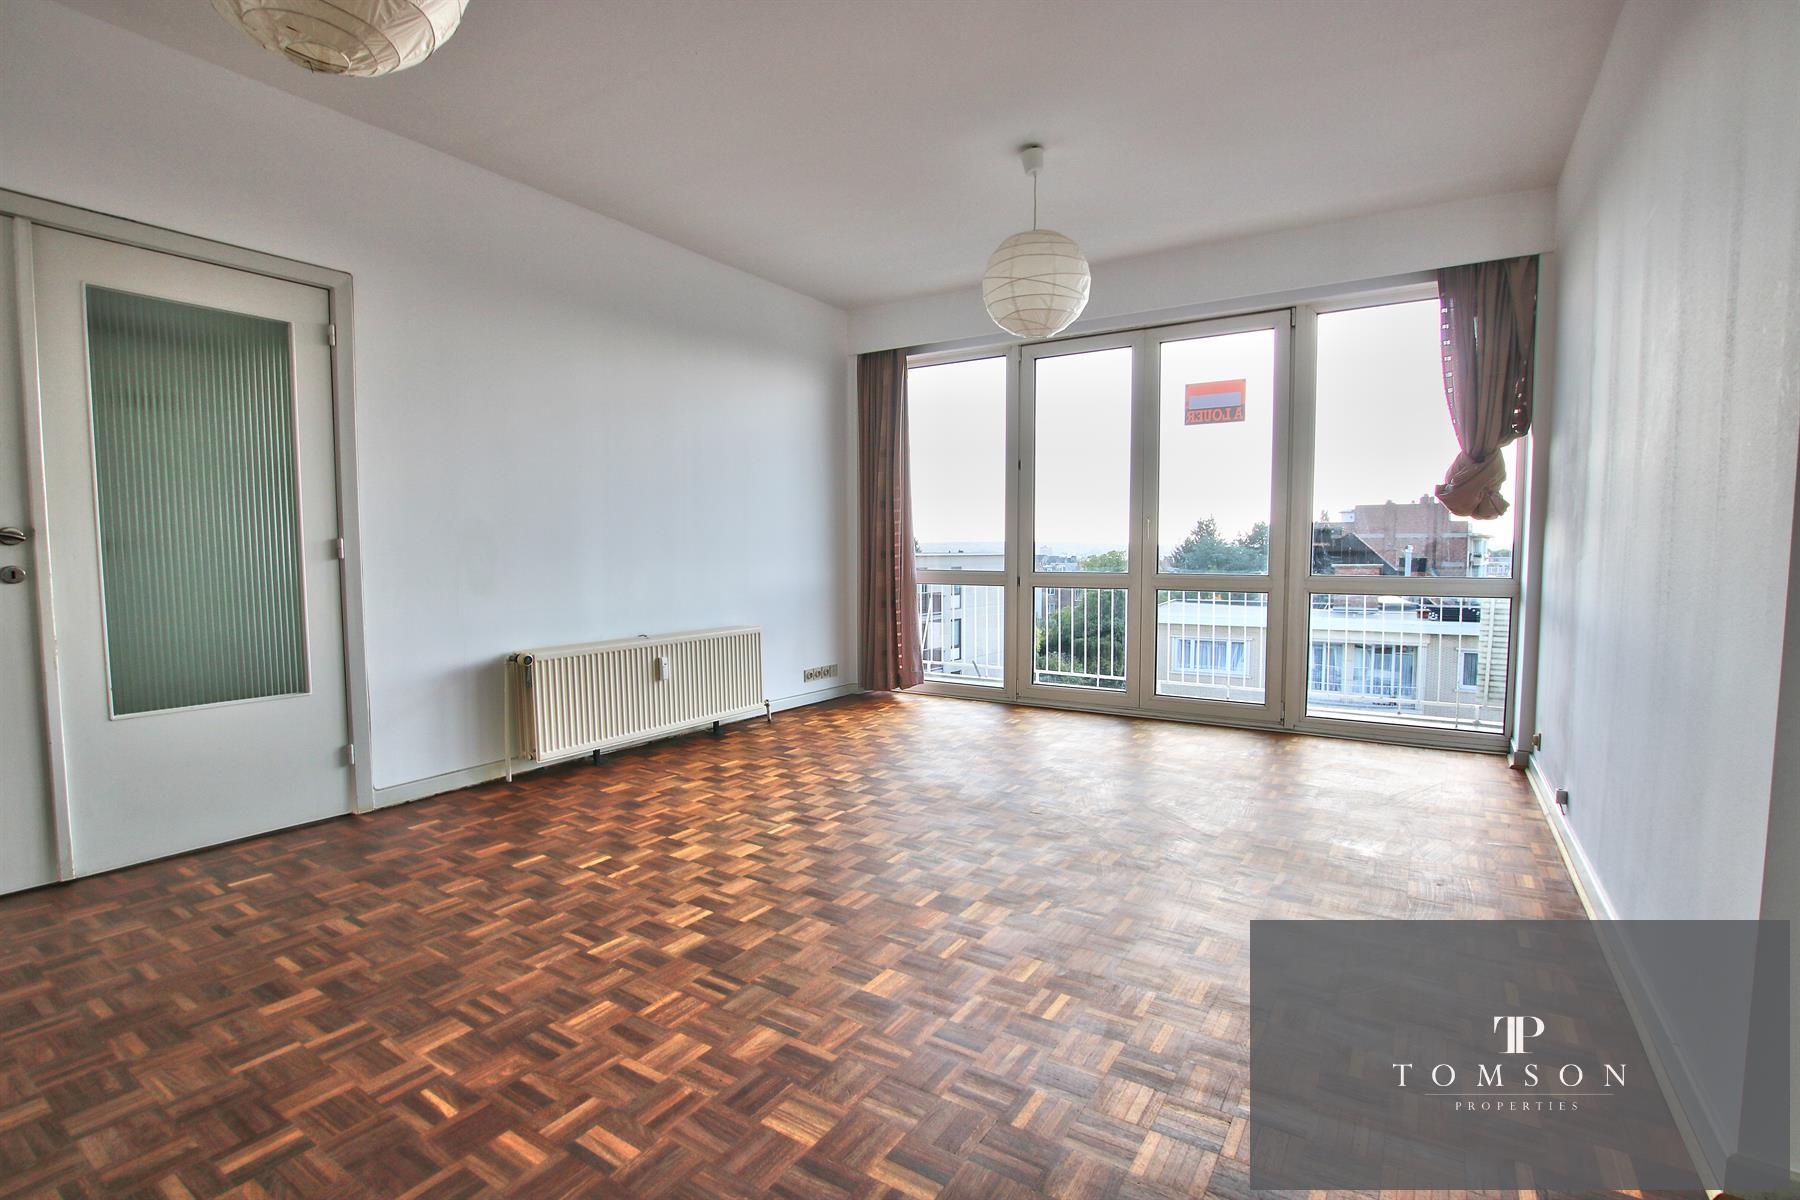 Appartement - Woluwe-Saint-Pierre - #4185308-2